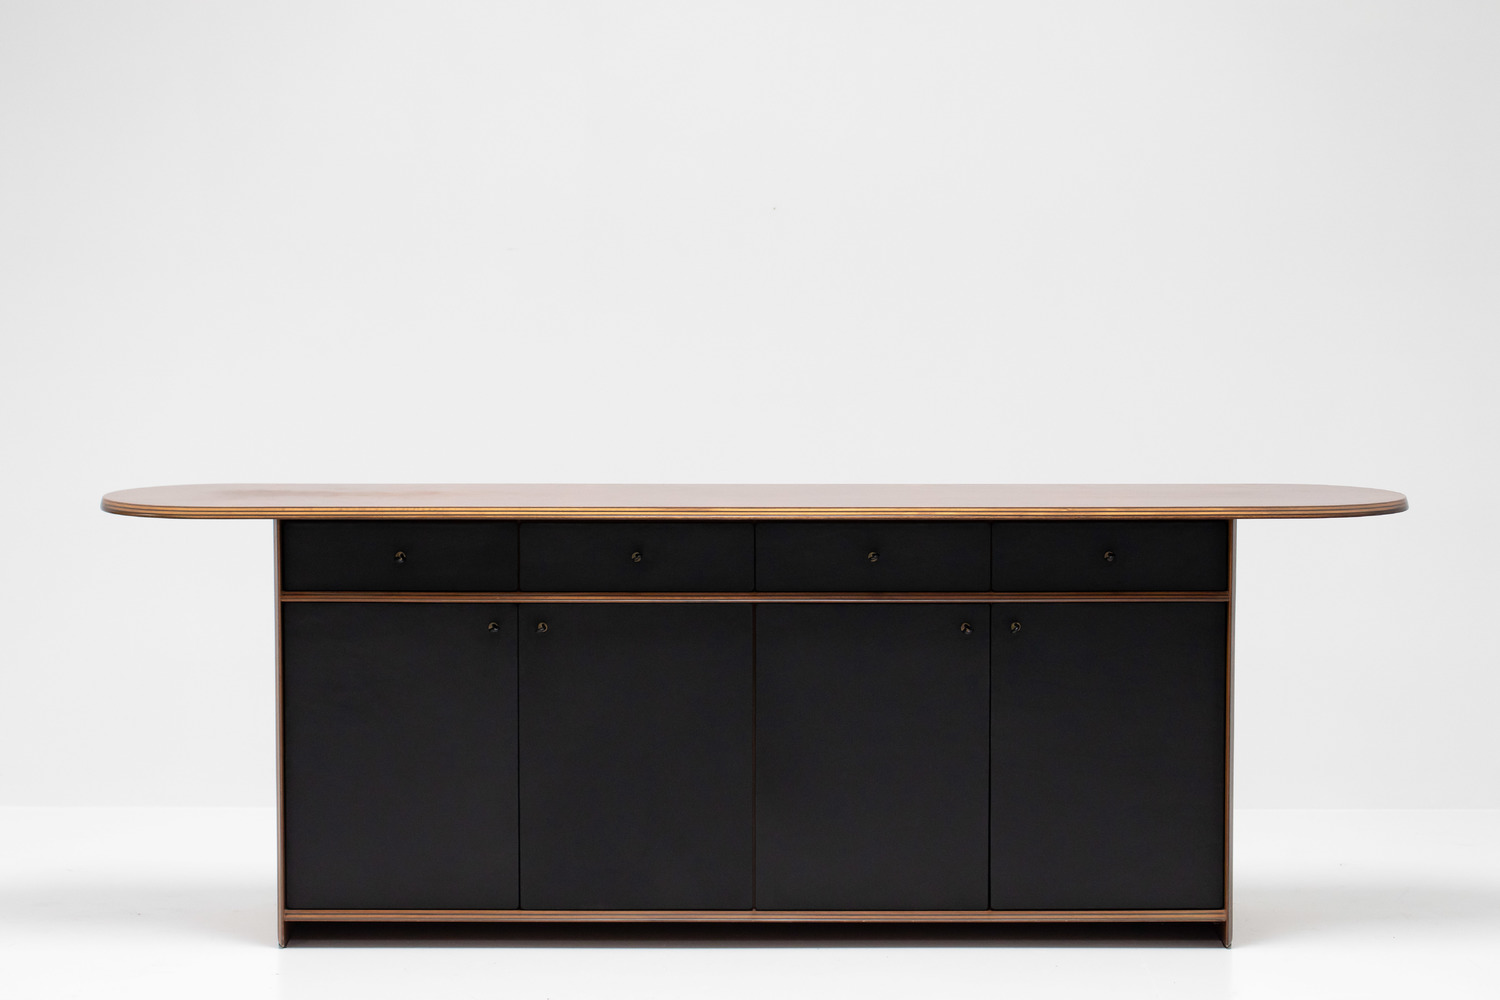 Sideboard by Afra and Tobia Scarpa for Maxalto